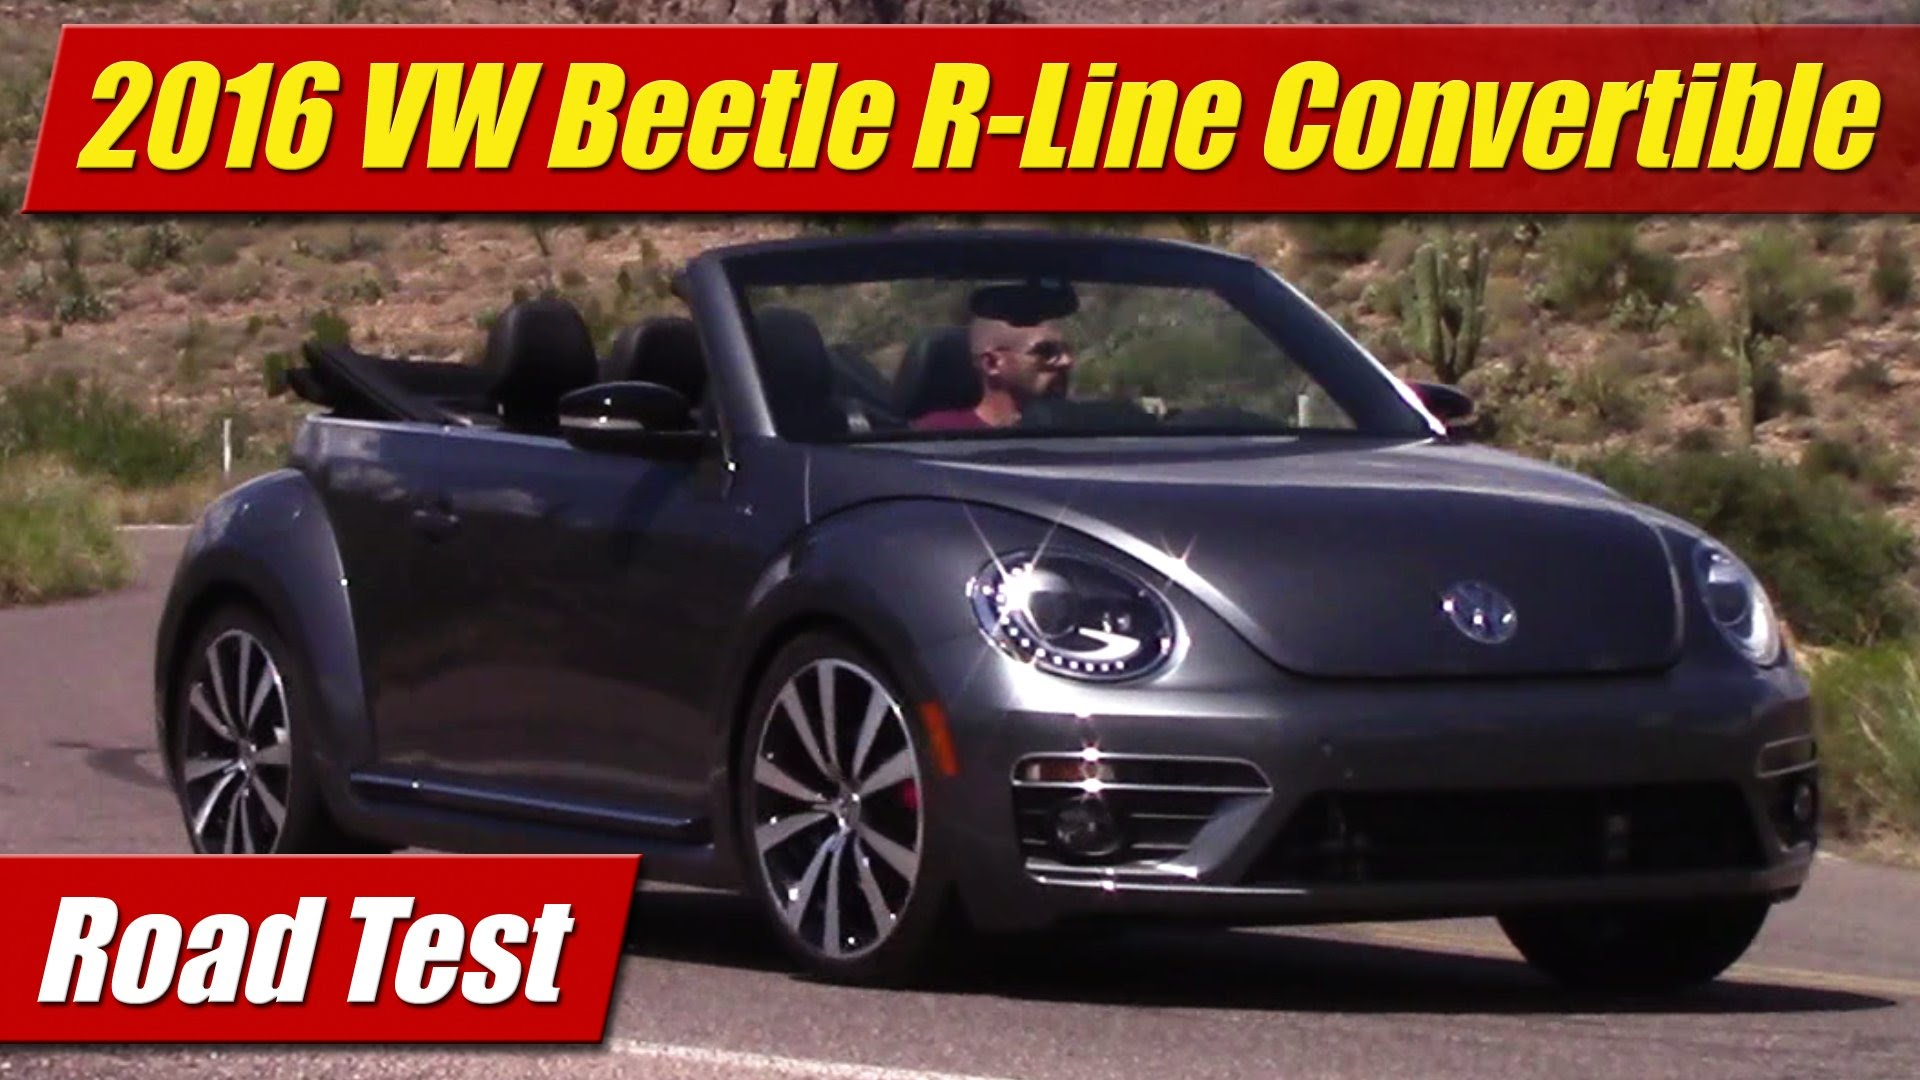 Road Test 2016 Volkswagen Beetle R Line Convertible